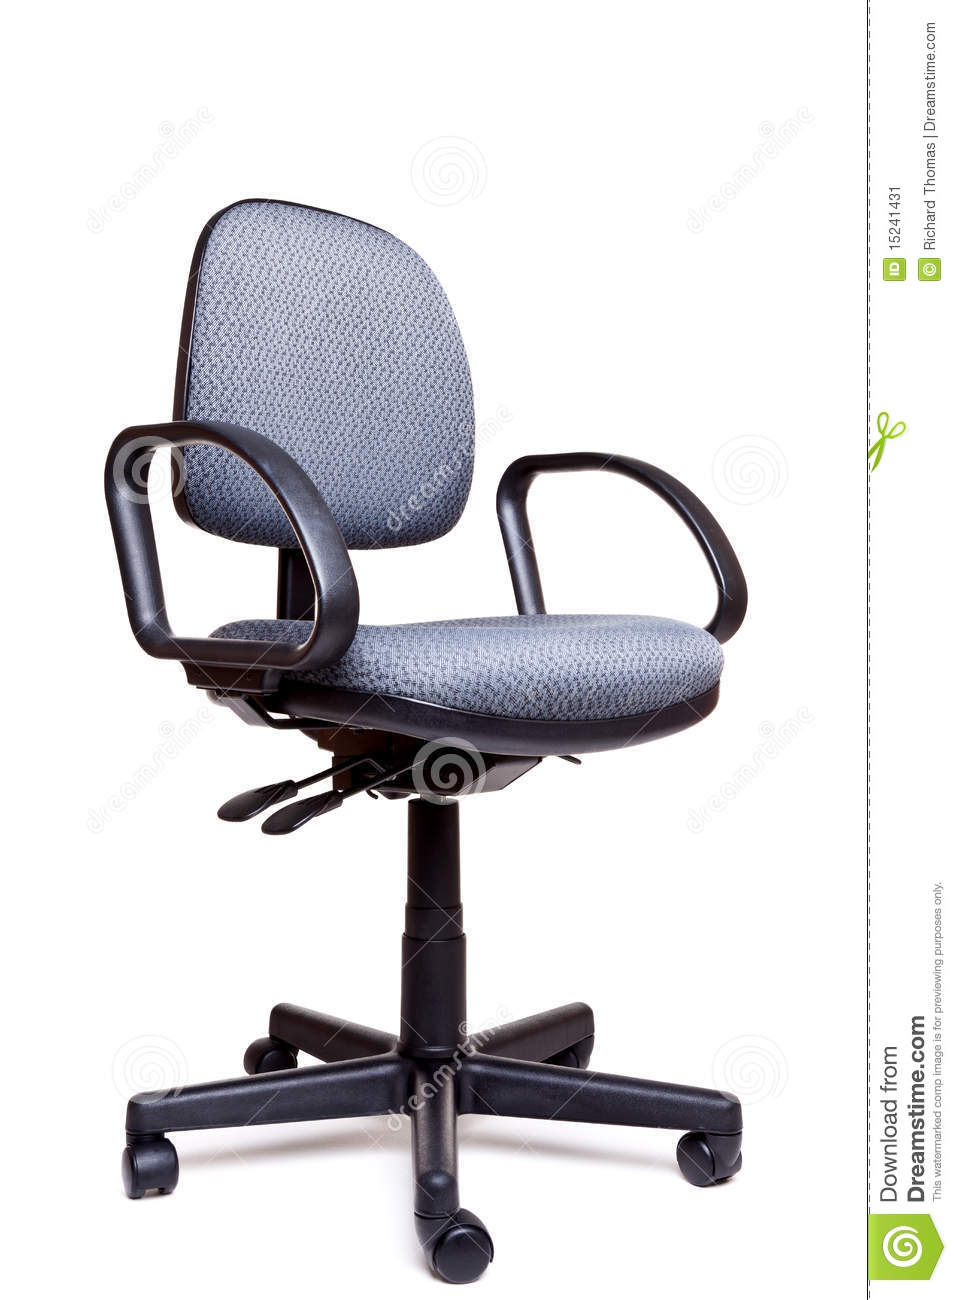 The Blue Office Chair Isolated On The White Background